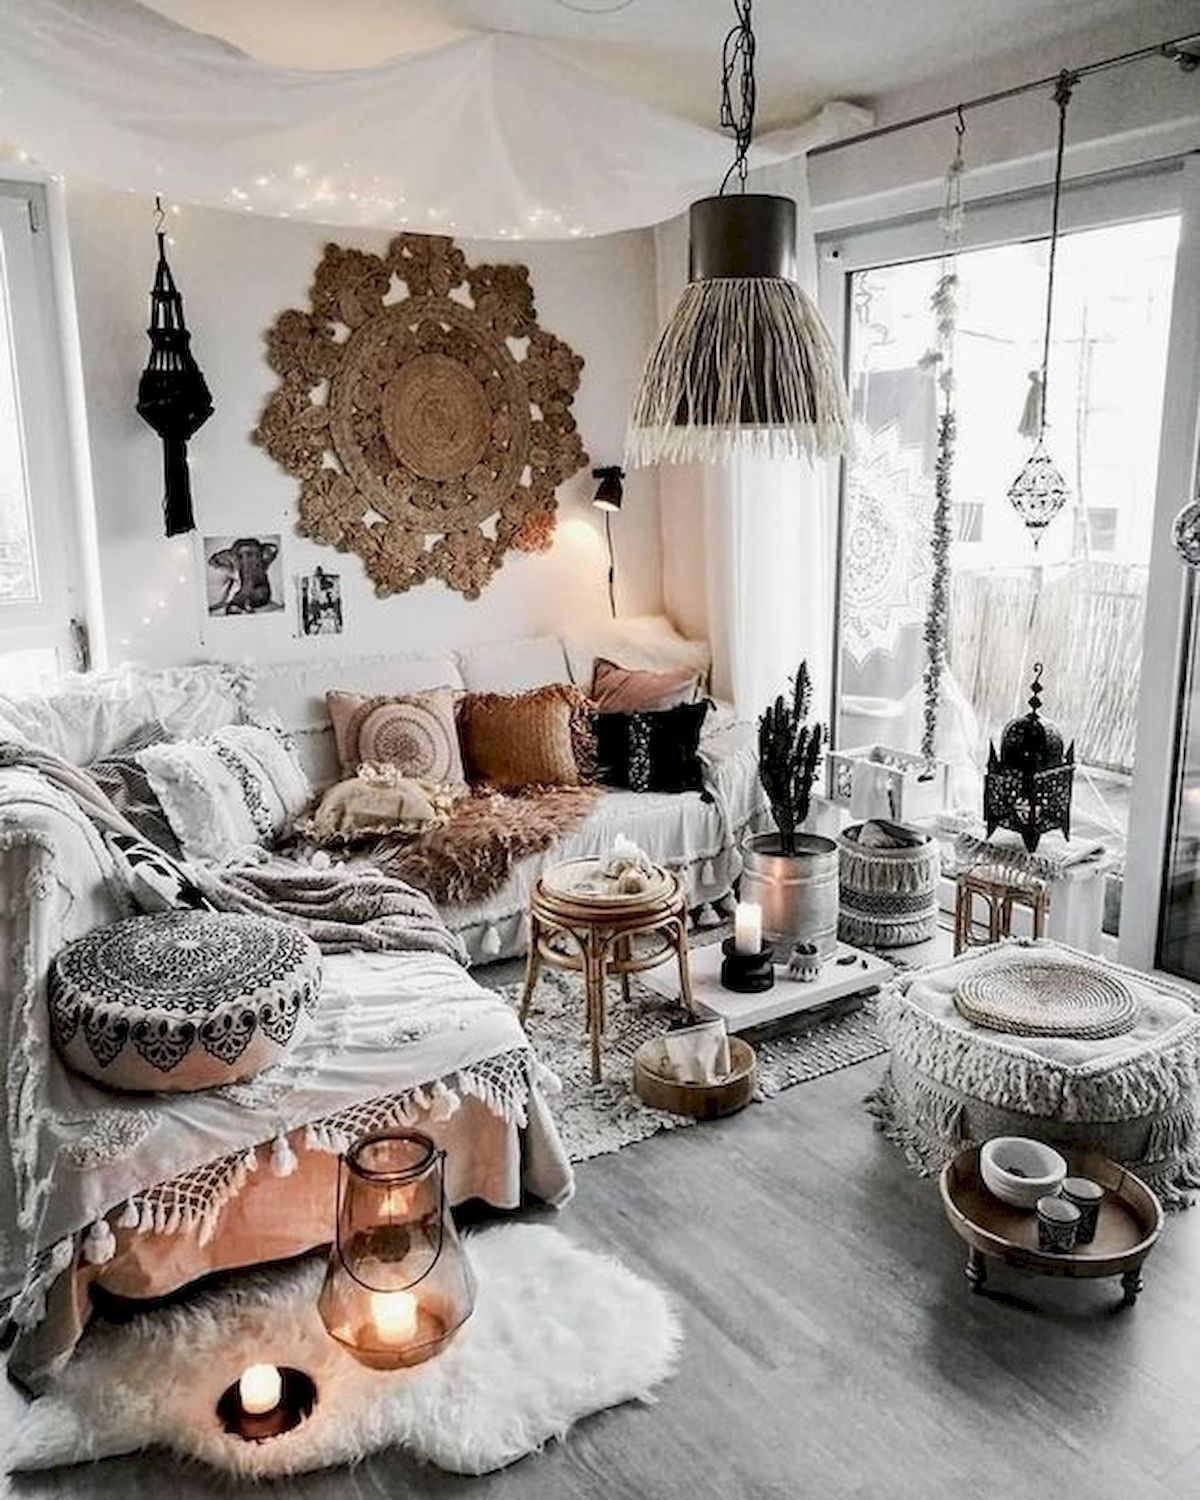 60 Awesome Bohemian Living Room Decor Ideas And Remodel images